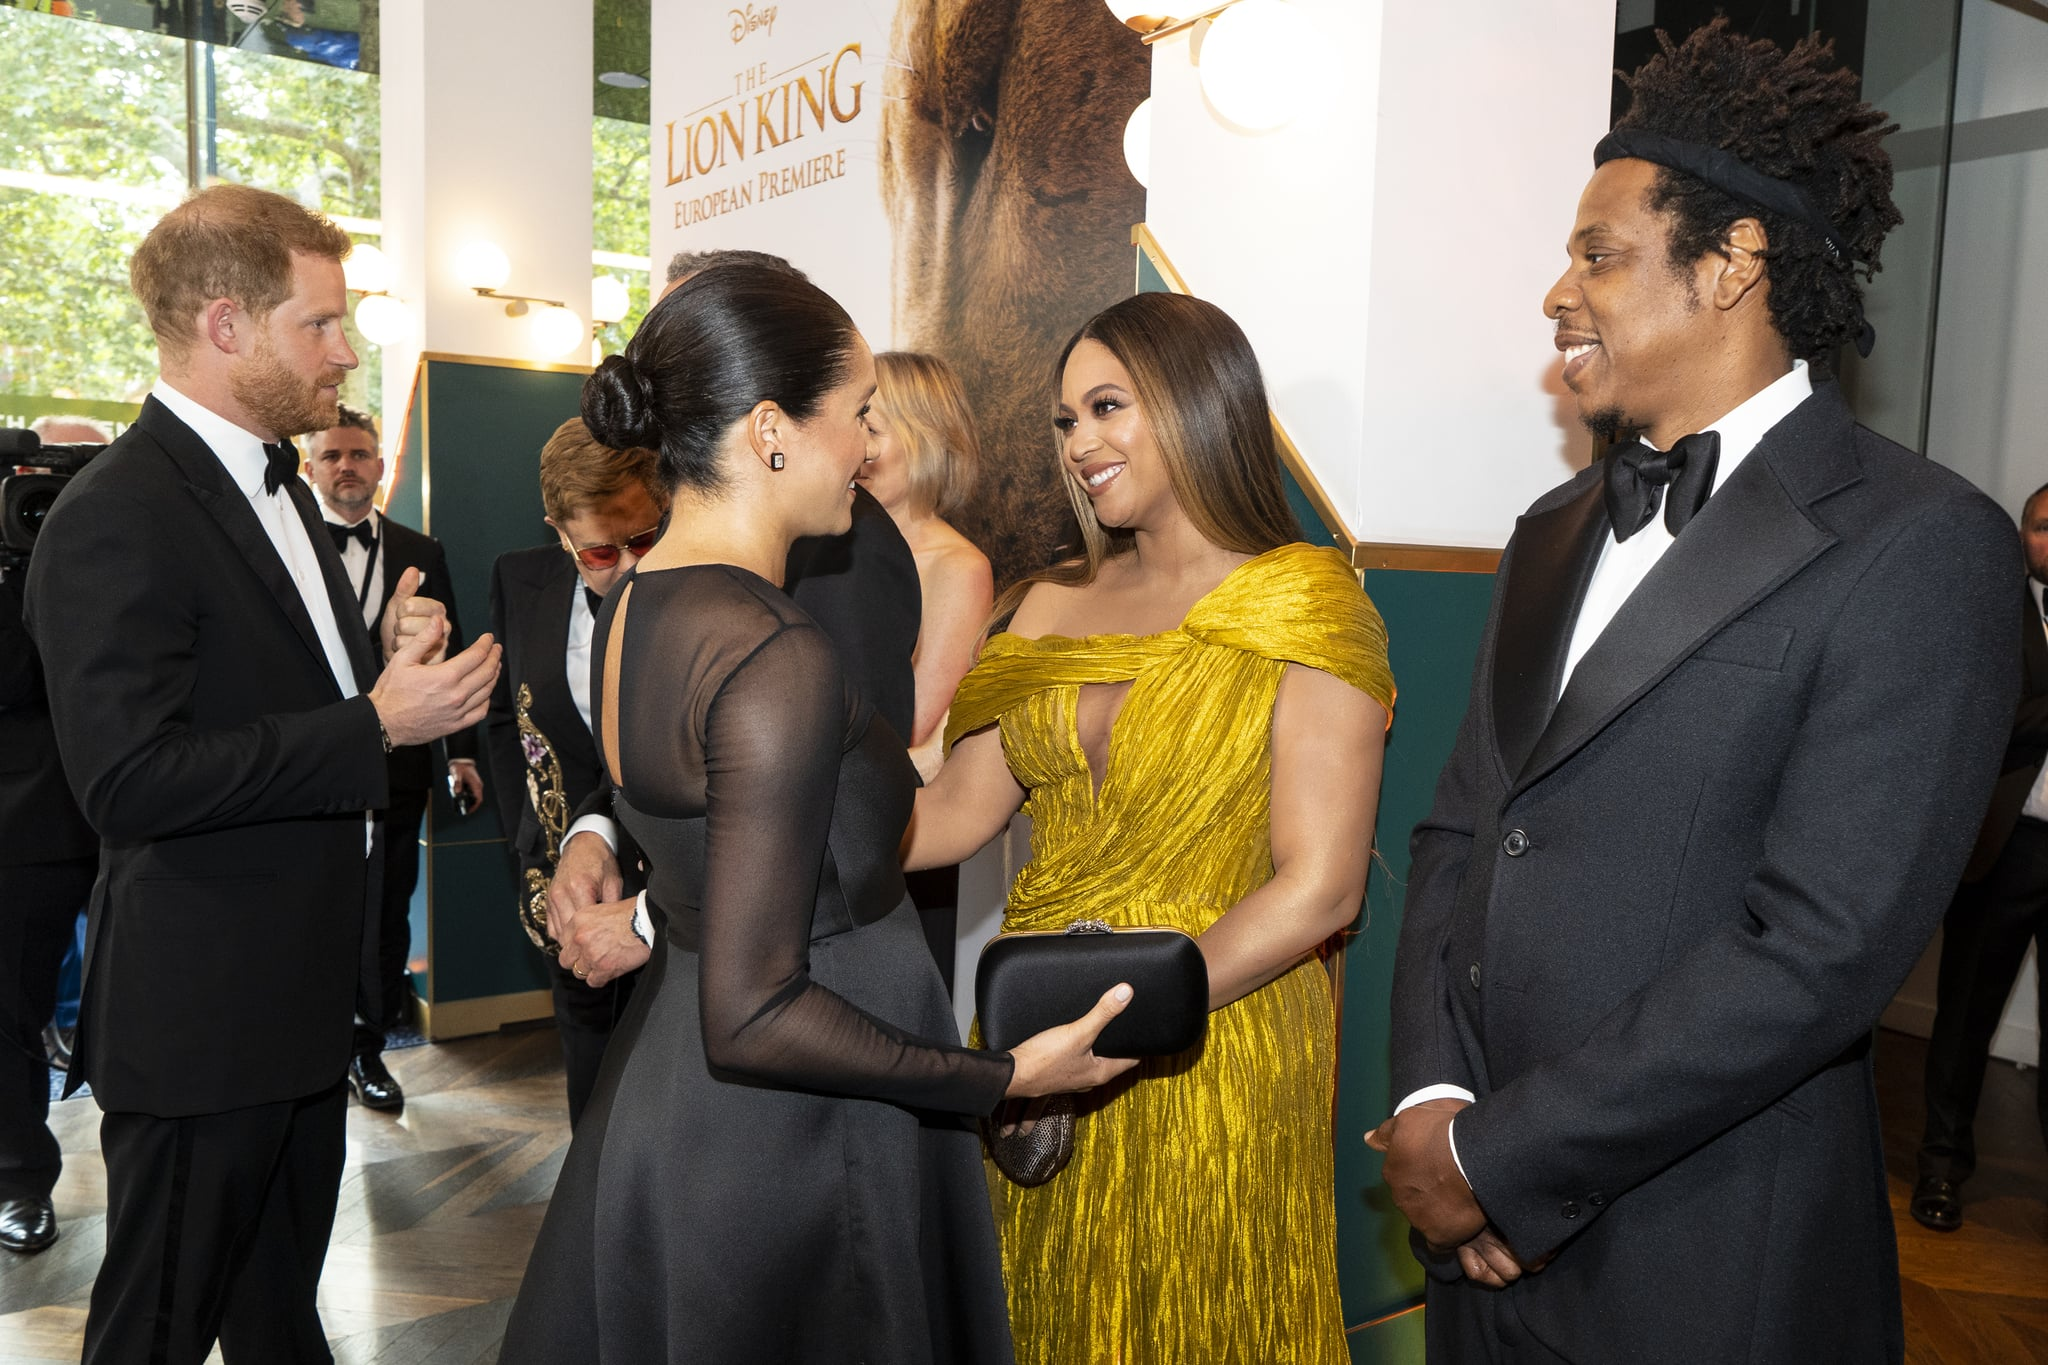 LONDON, ENGLAND - JULY 14: Prince Harry, Duke of Sussex (L) and Meghan, Duchess of Sussex (2nd L) meets cast and crew, including Beyonce Knowles-Carter (C) Jay-Z (R) as they attend the European Premiere of Disney's